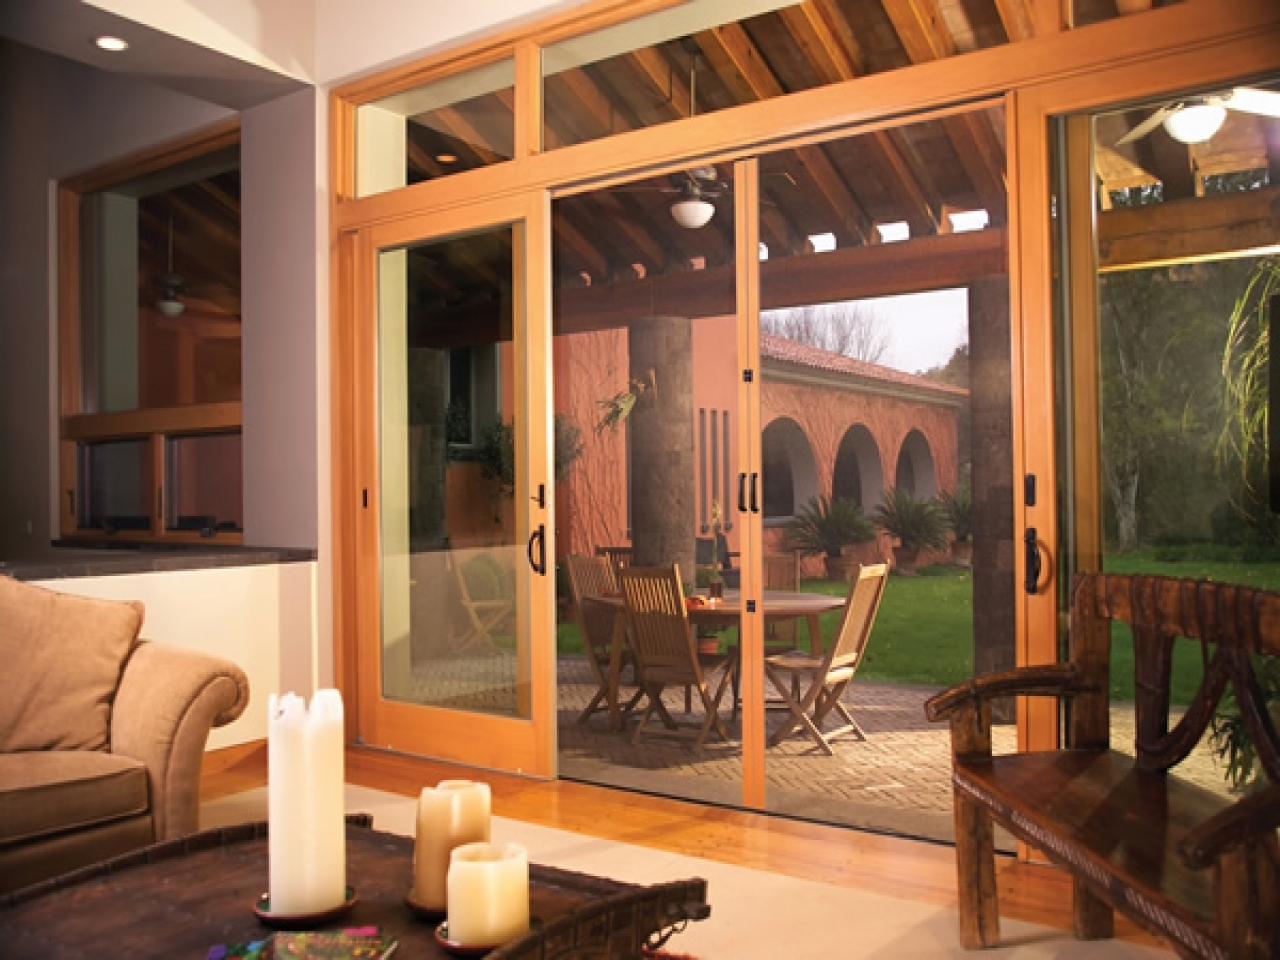 Guardian Sliding Doors Screenretractable patio doors replacement sliding screen door guardian